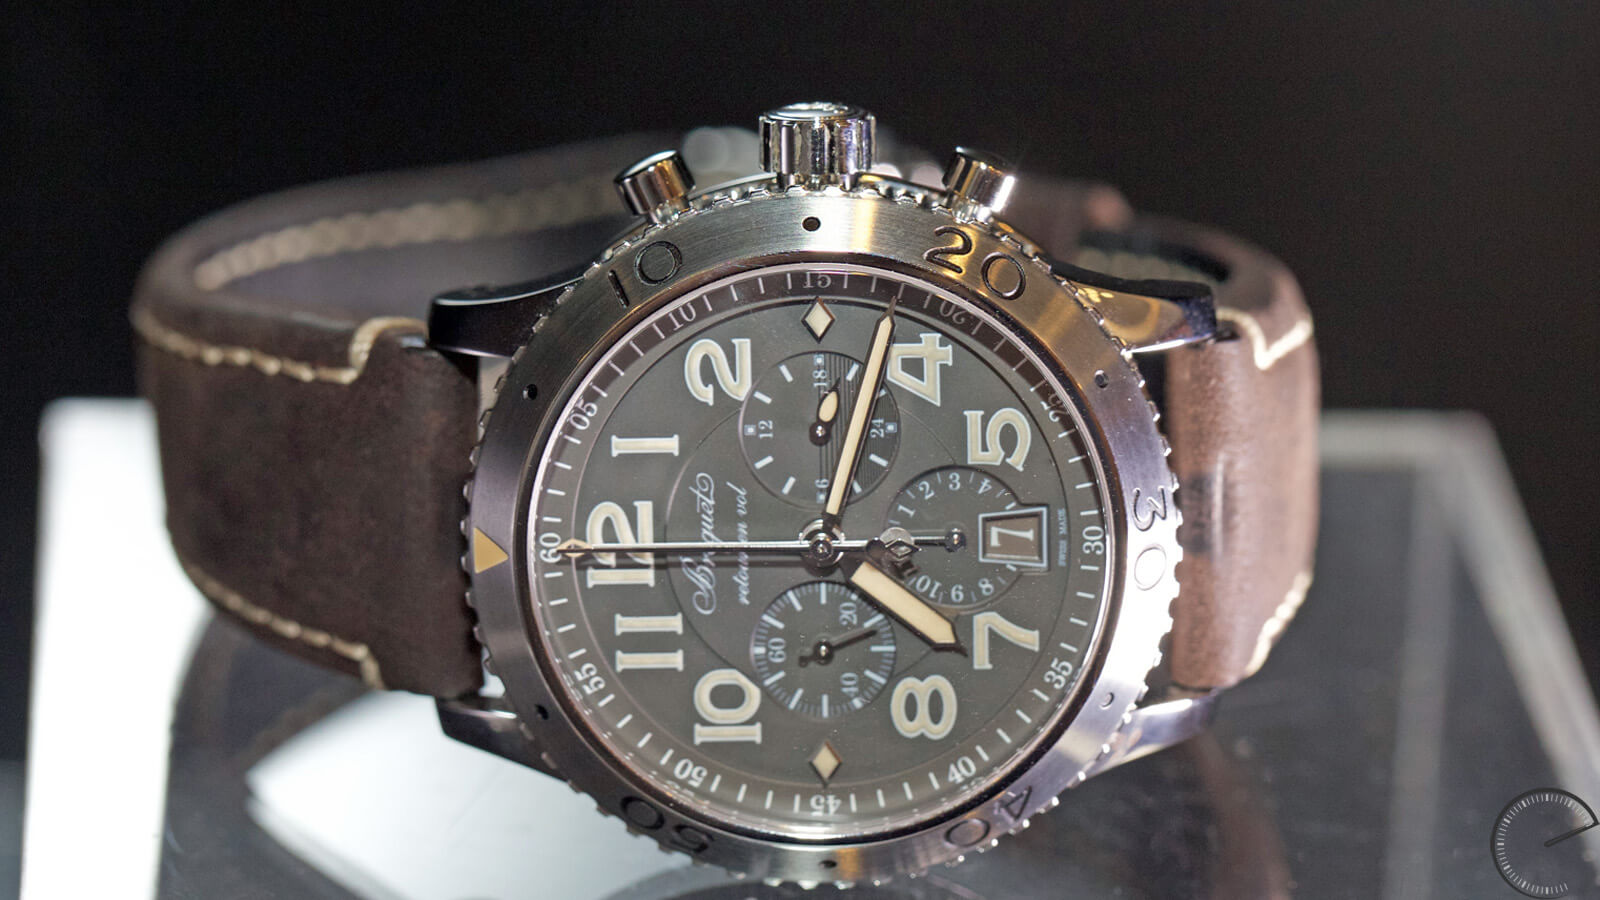 Image of Breguet Type XXI 3817 - flyback chronograph